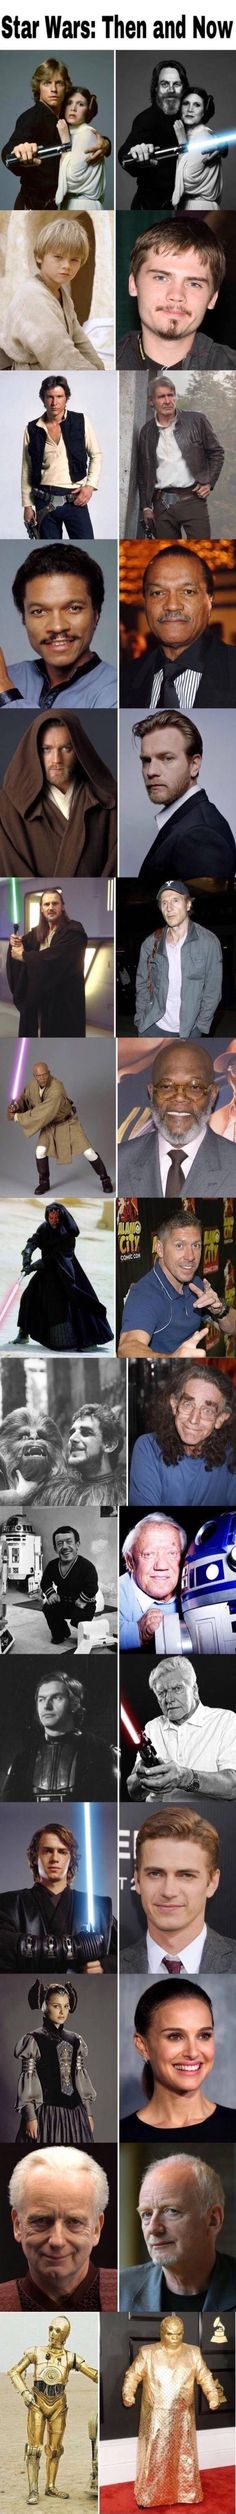 Star Wars now and then